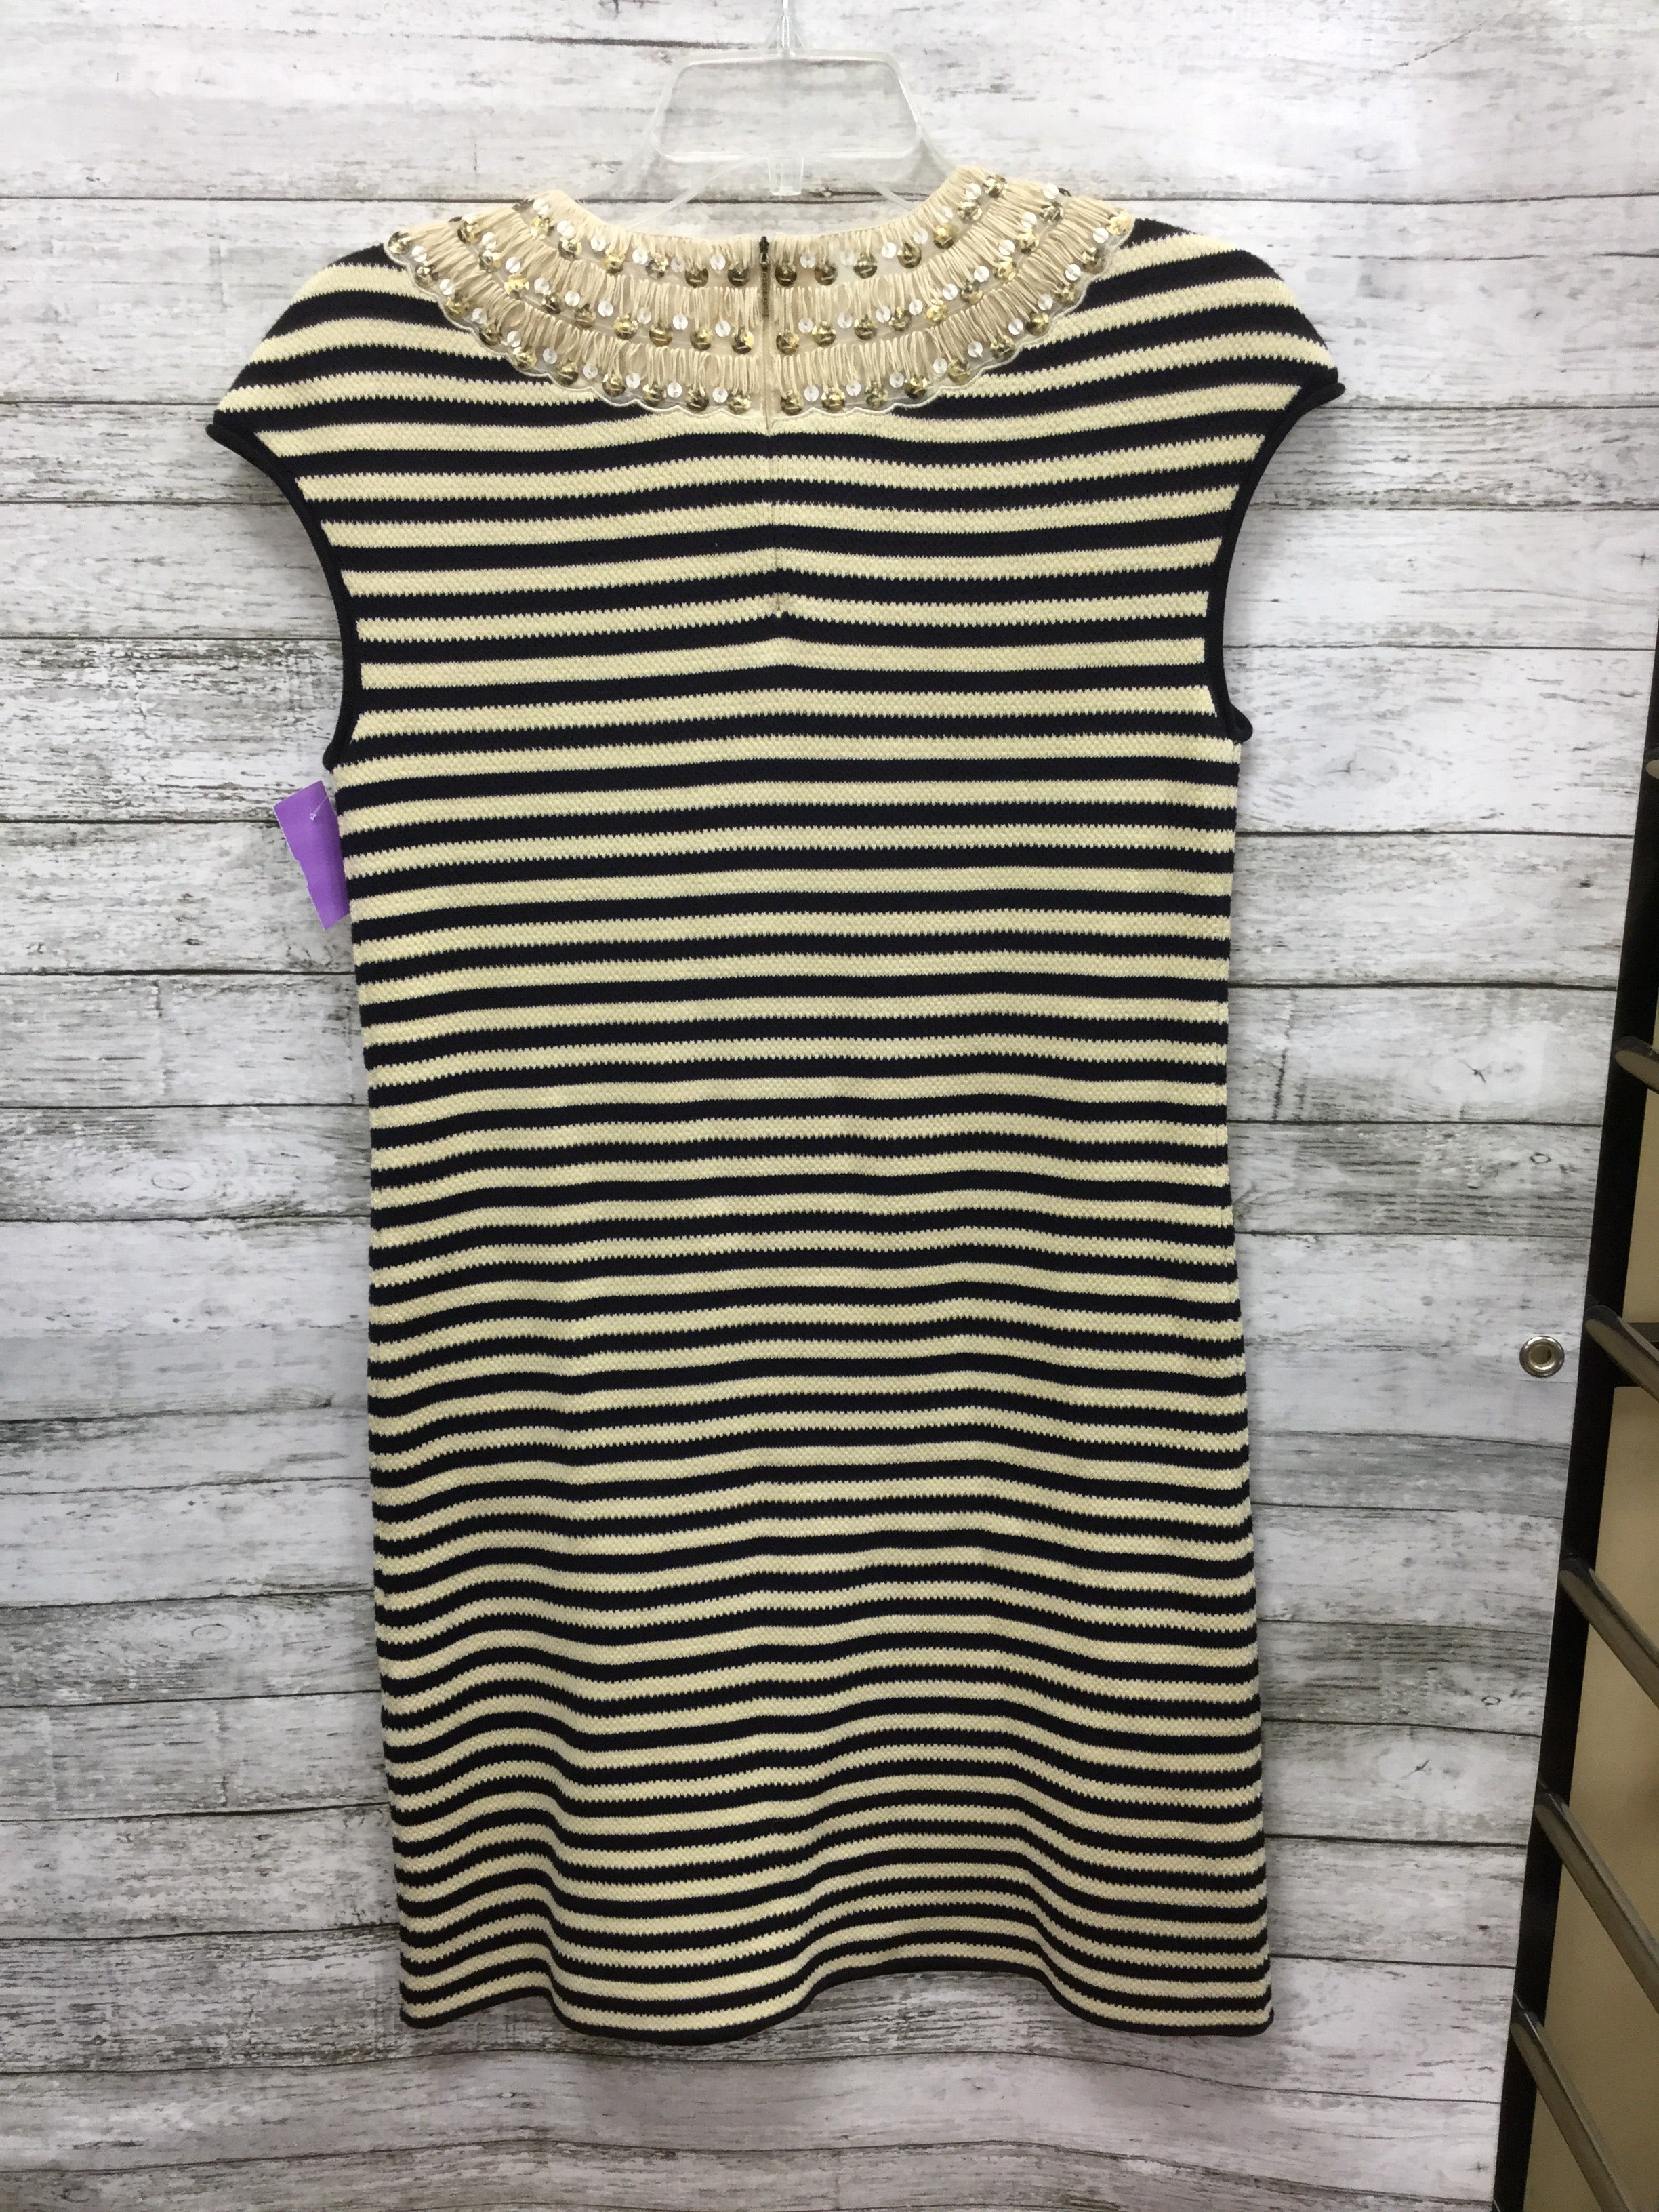 Photo #1 - BRAND: TORY BURCH , STYLE: DRESS SHORT SLEEVELESS , COLOR: STRIPED , SIZE: S , SKU: 127-4169-35679, , CREAM AND BLACK KNIT TORY BURCH DRESS! SEQUIN TRIM DETAIL AROUND NECK AND CAP SLEEVES.